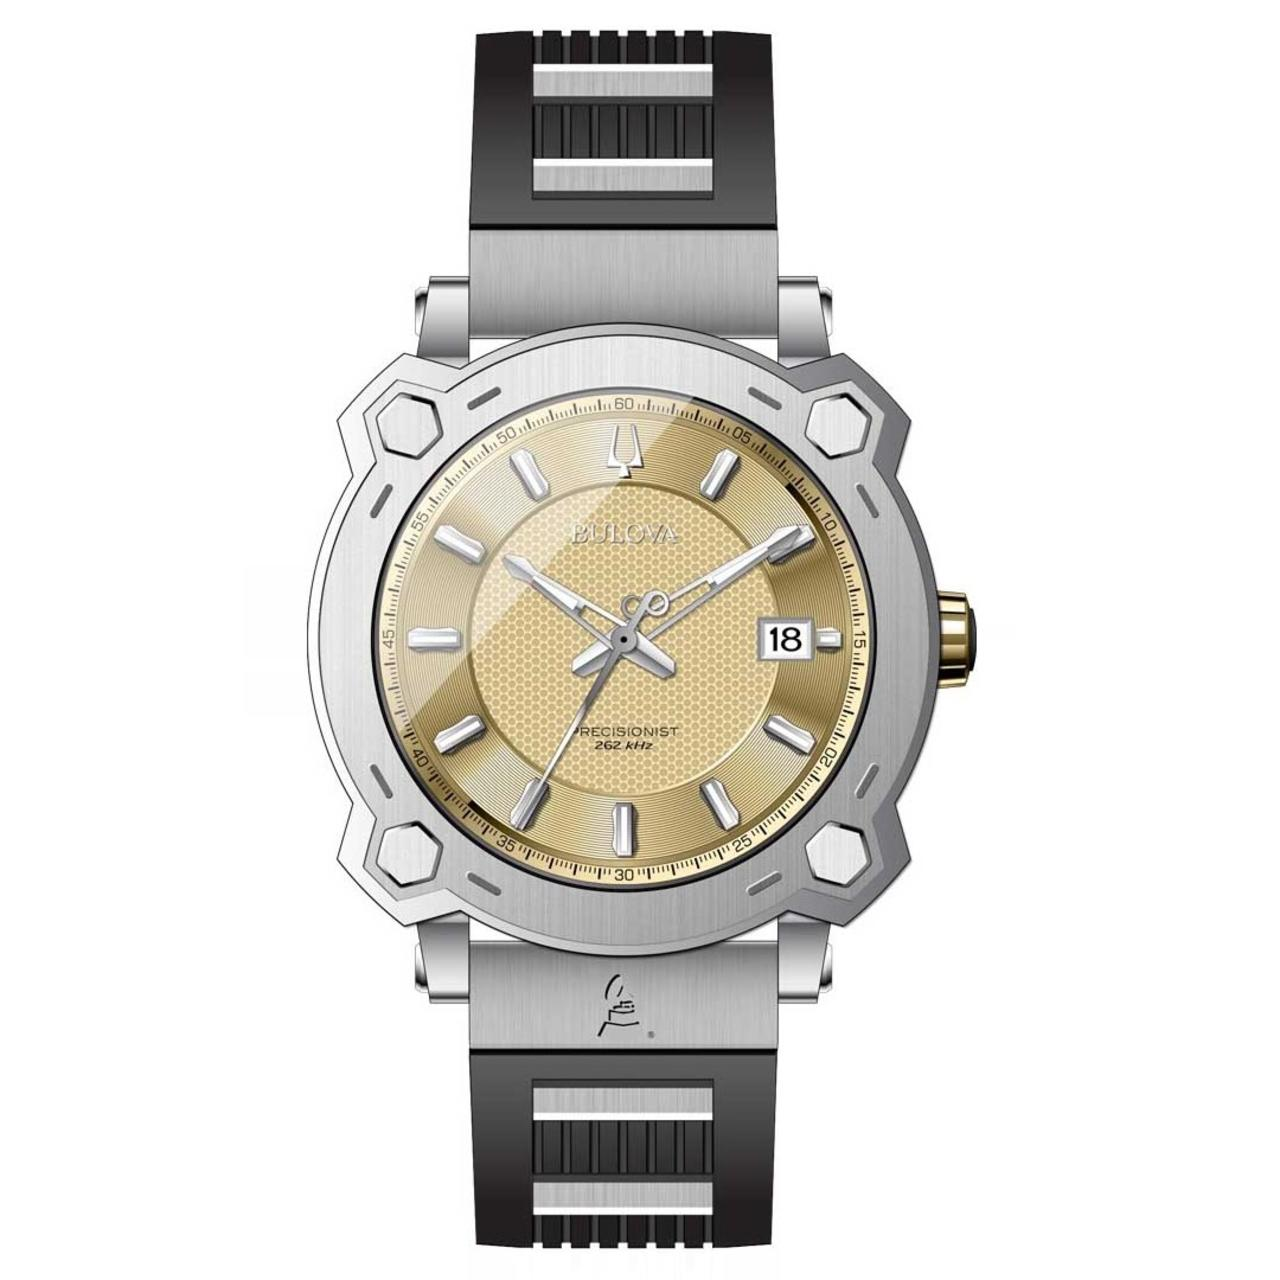 Bulova Heads to the Grammys